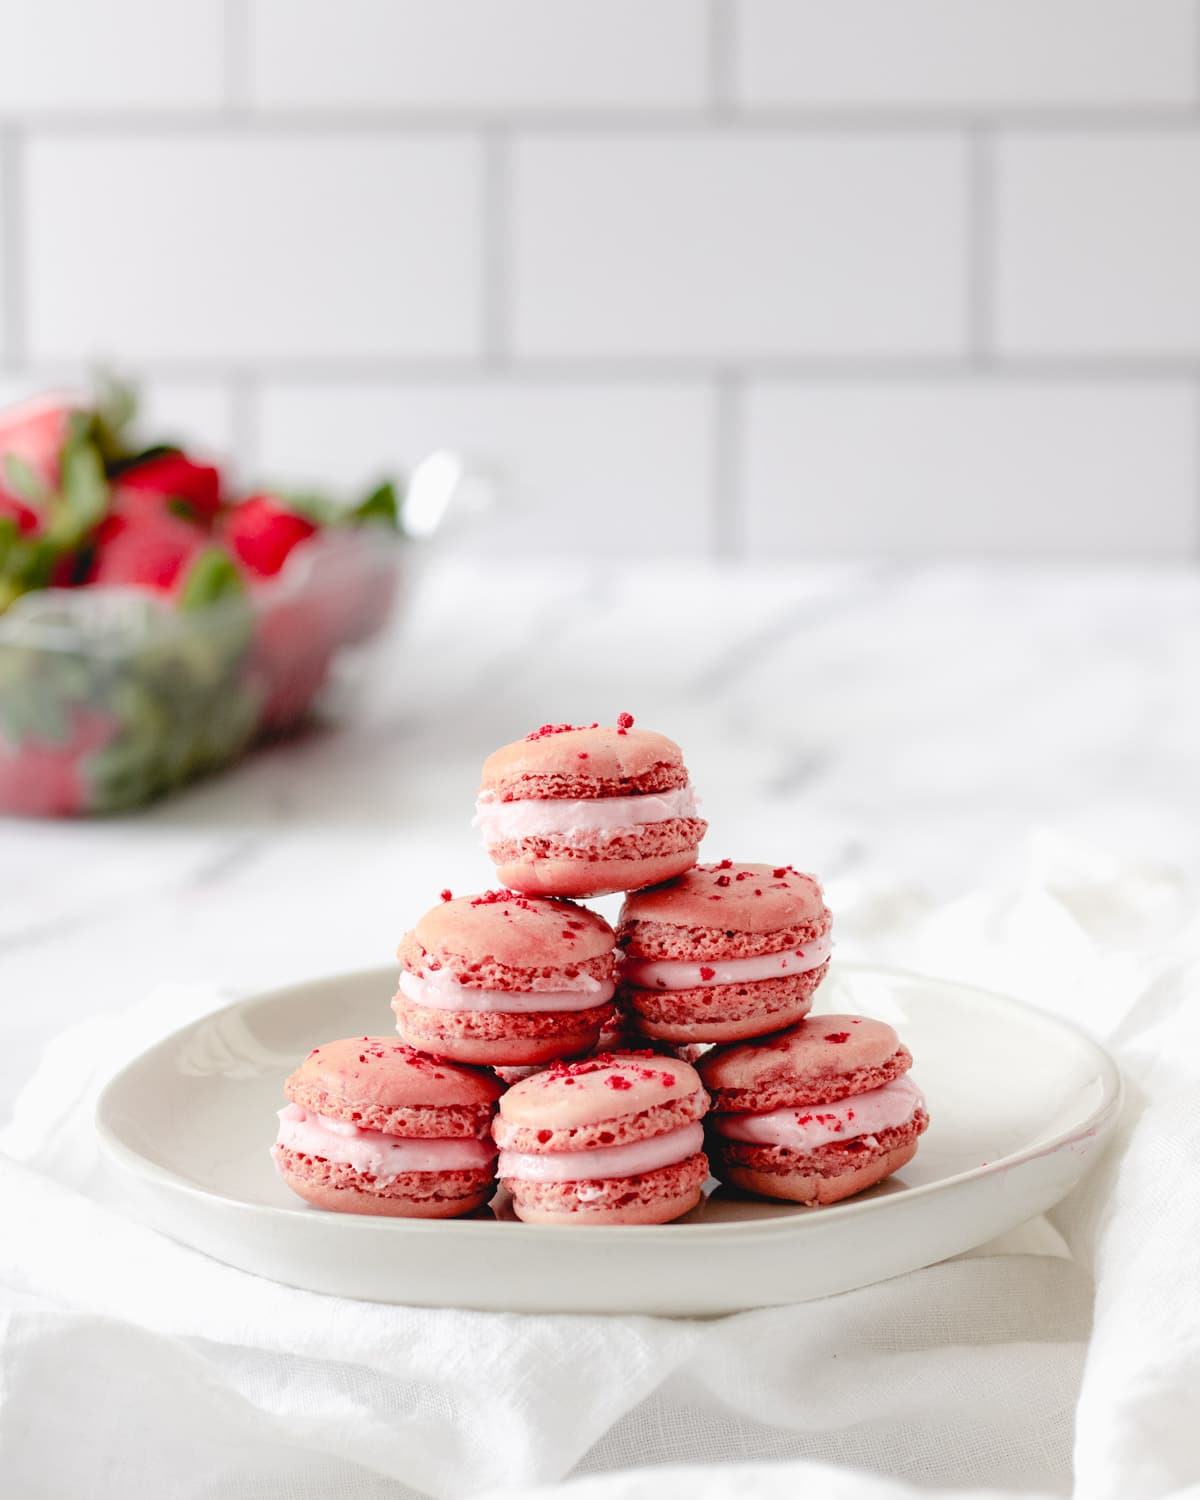 Strawberry macarons stacked on a round plate, with a carton of strawberries in the background.